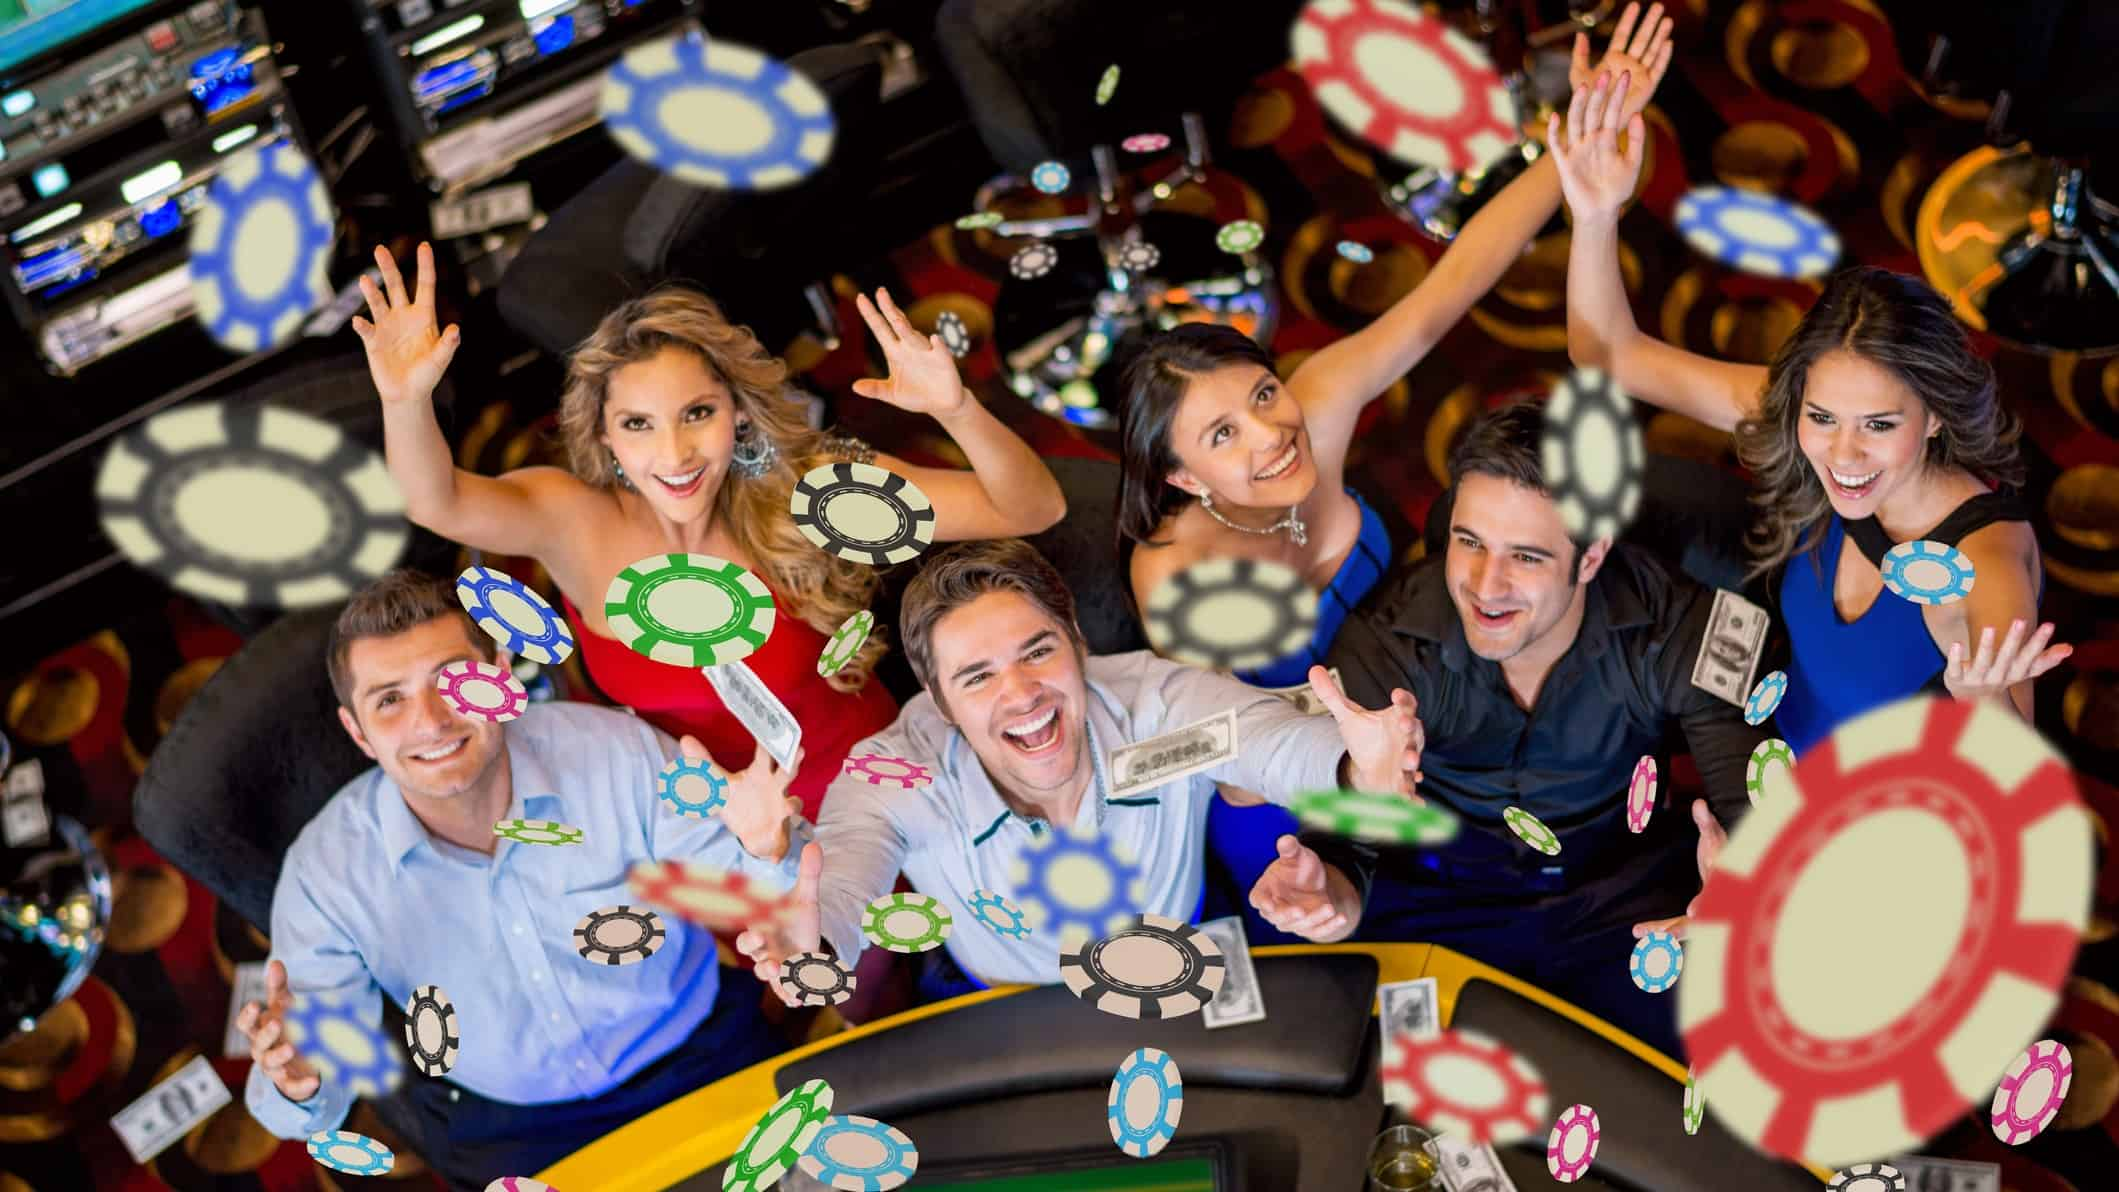 Rising ASX share price represented by casino players throwing chips in the air